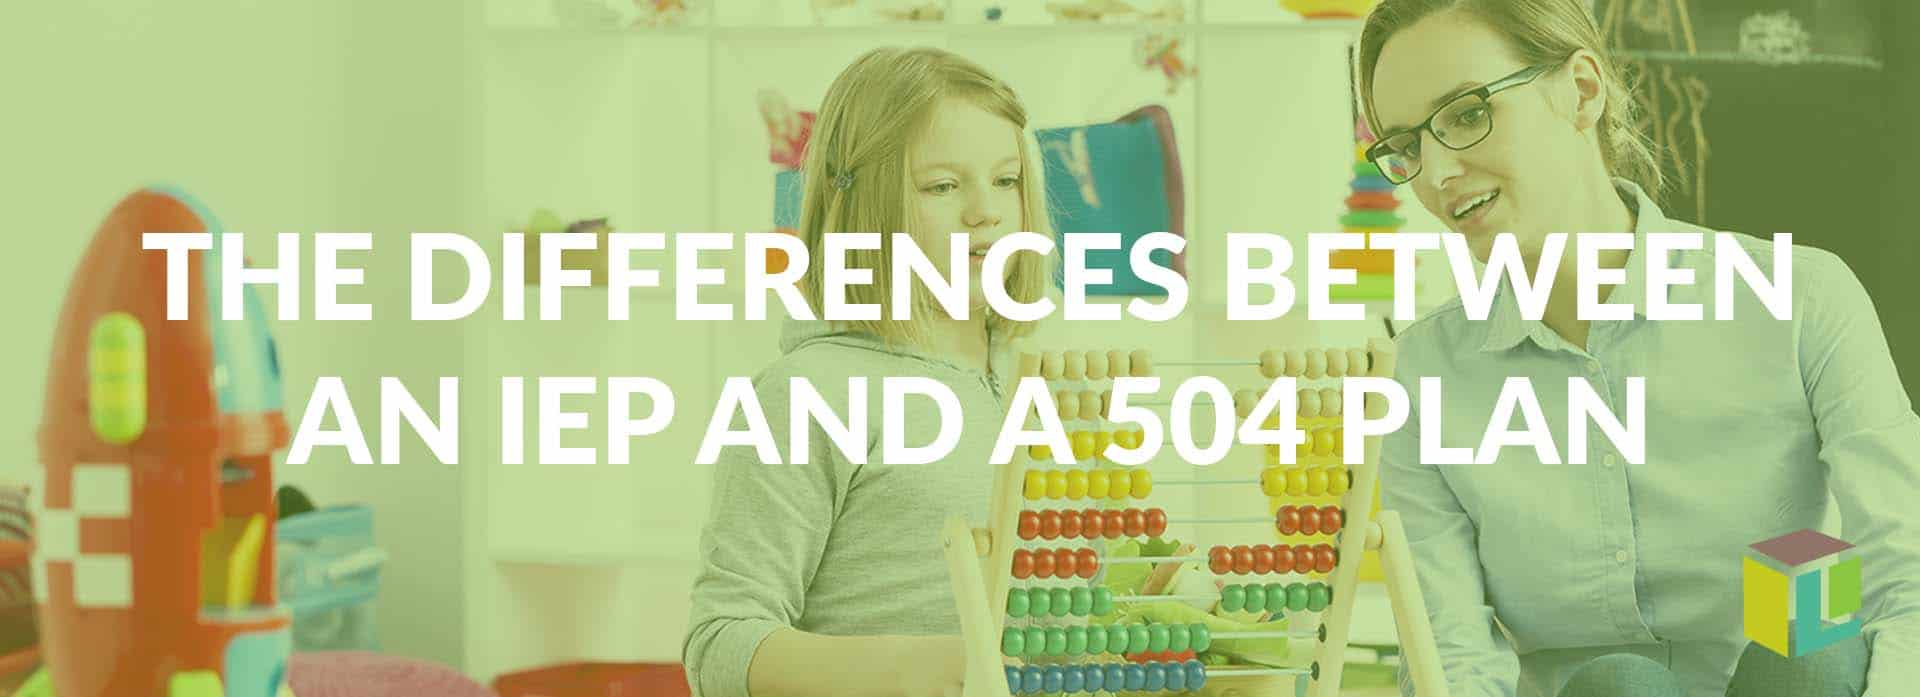 What Is The Difference Between An IEP And A 504 Plan